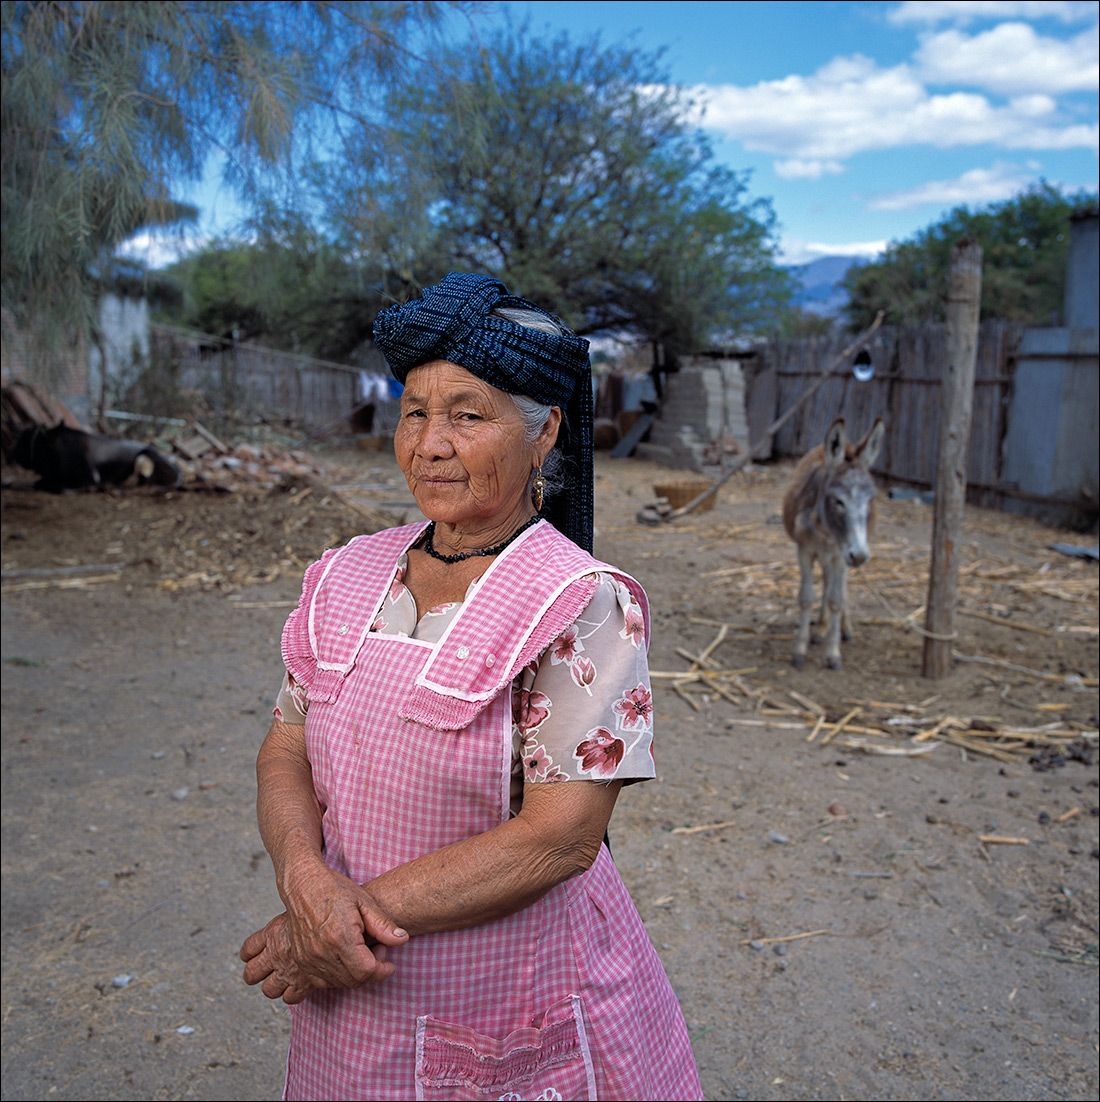 Angelina, Zapotec Women of Oaxaca